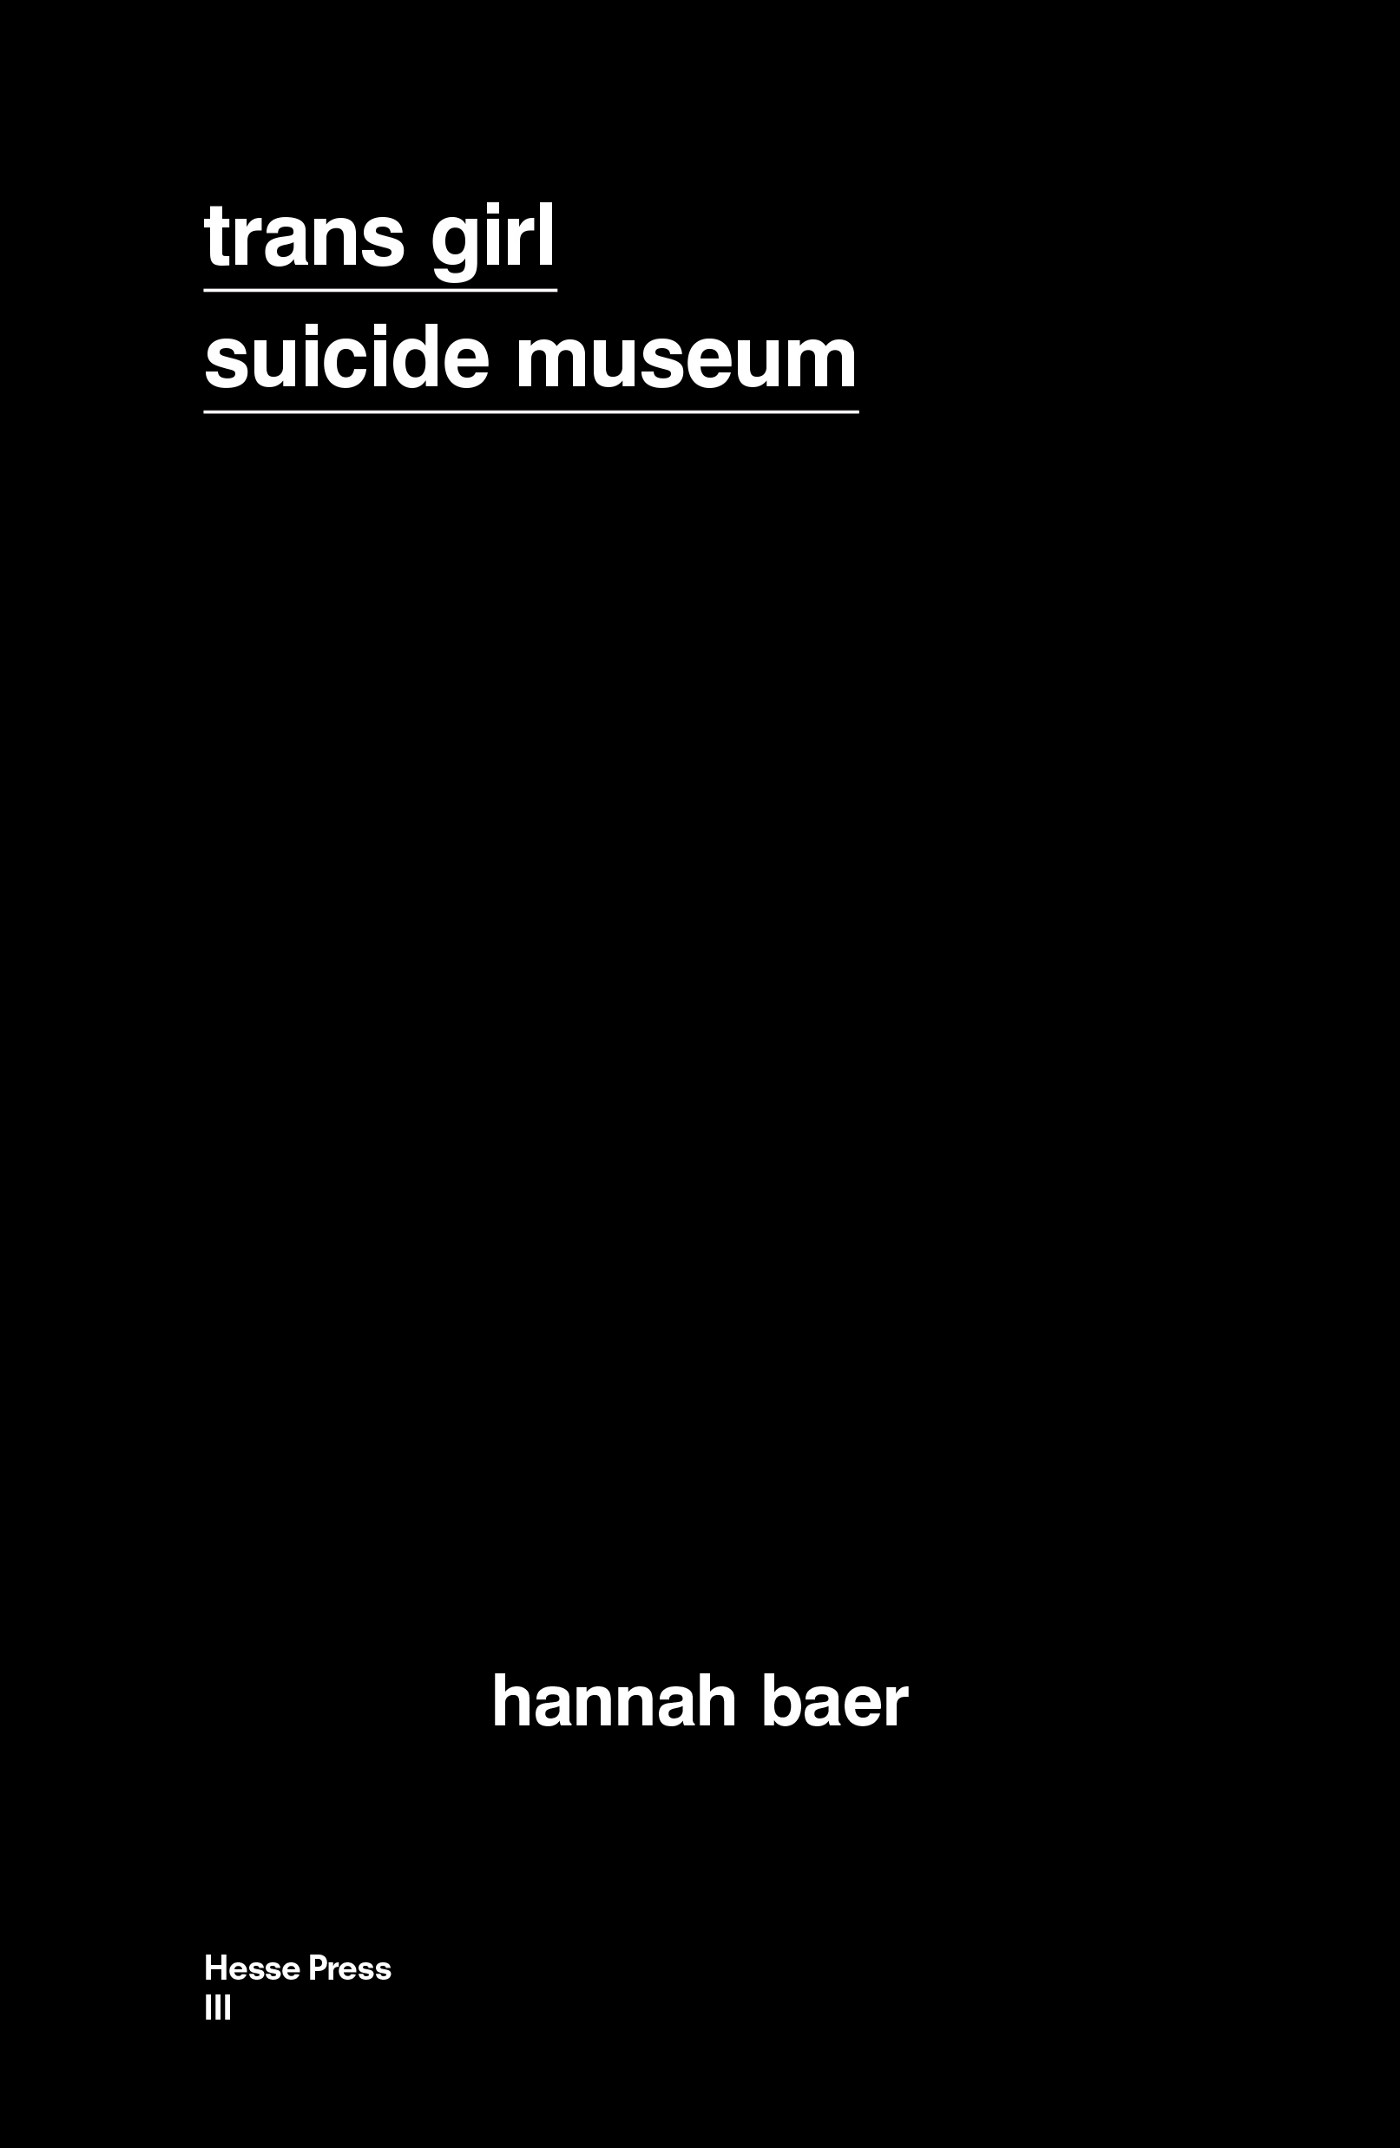 The cover of Hannah Baer's book TRANS GIRL SUICIDE MUSEUM.